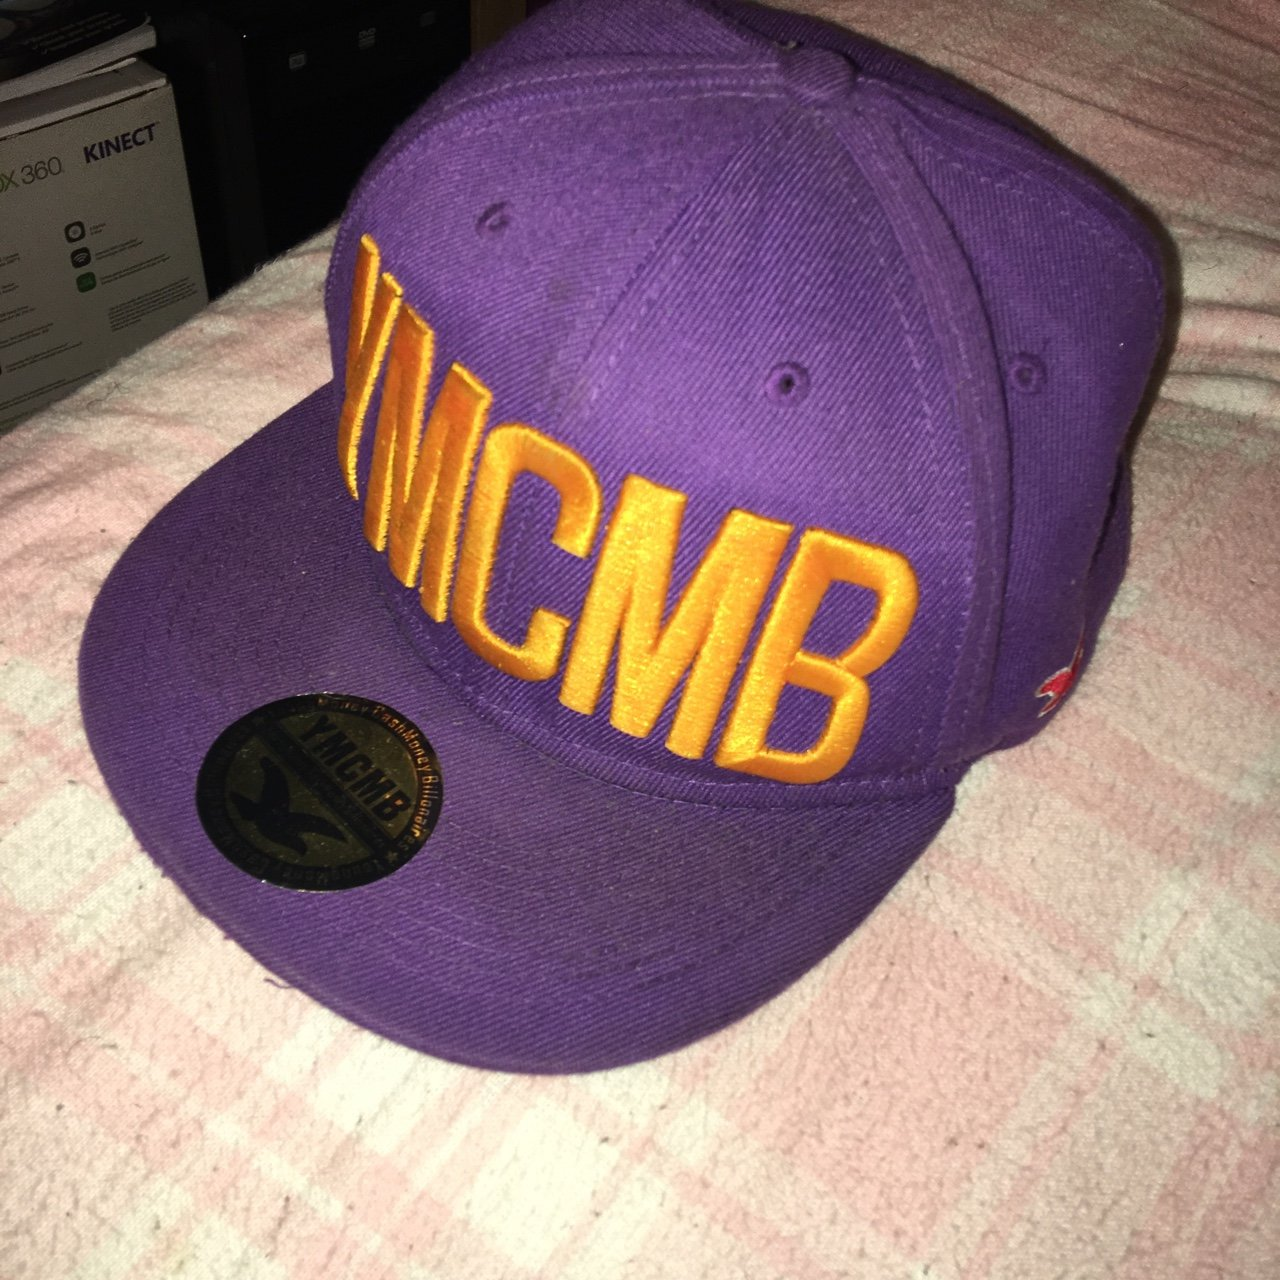 YMCMB purple Hollister adjustable SnapBack. Worn about tags. - Depop 85c4ced3f3a